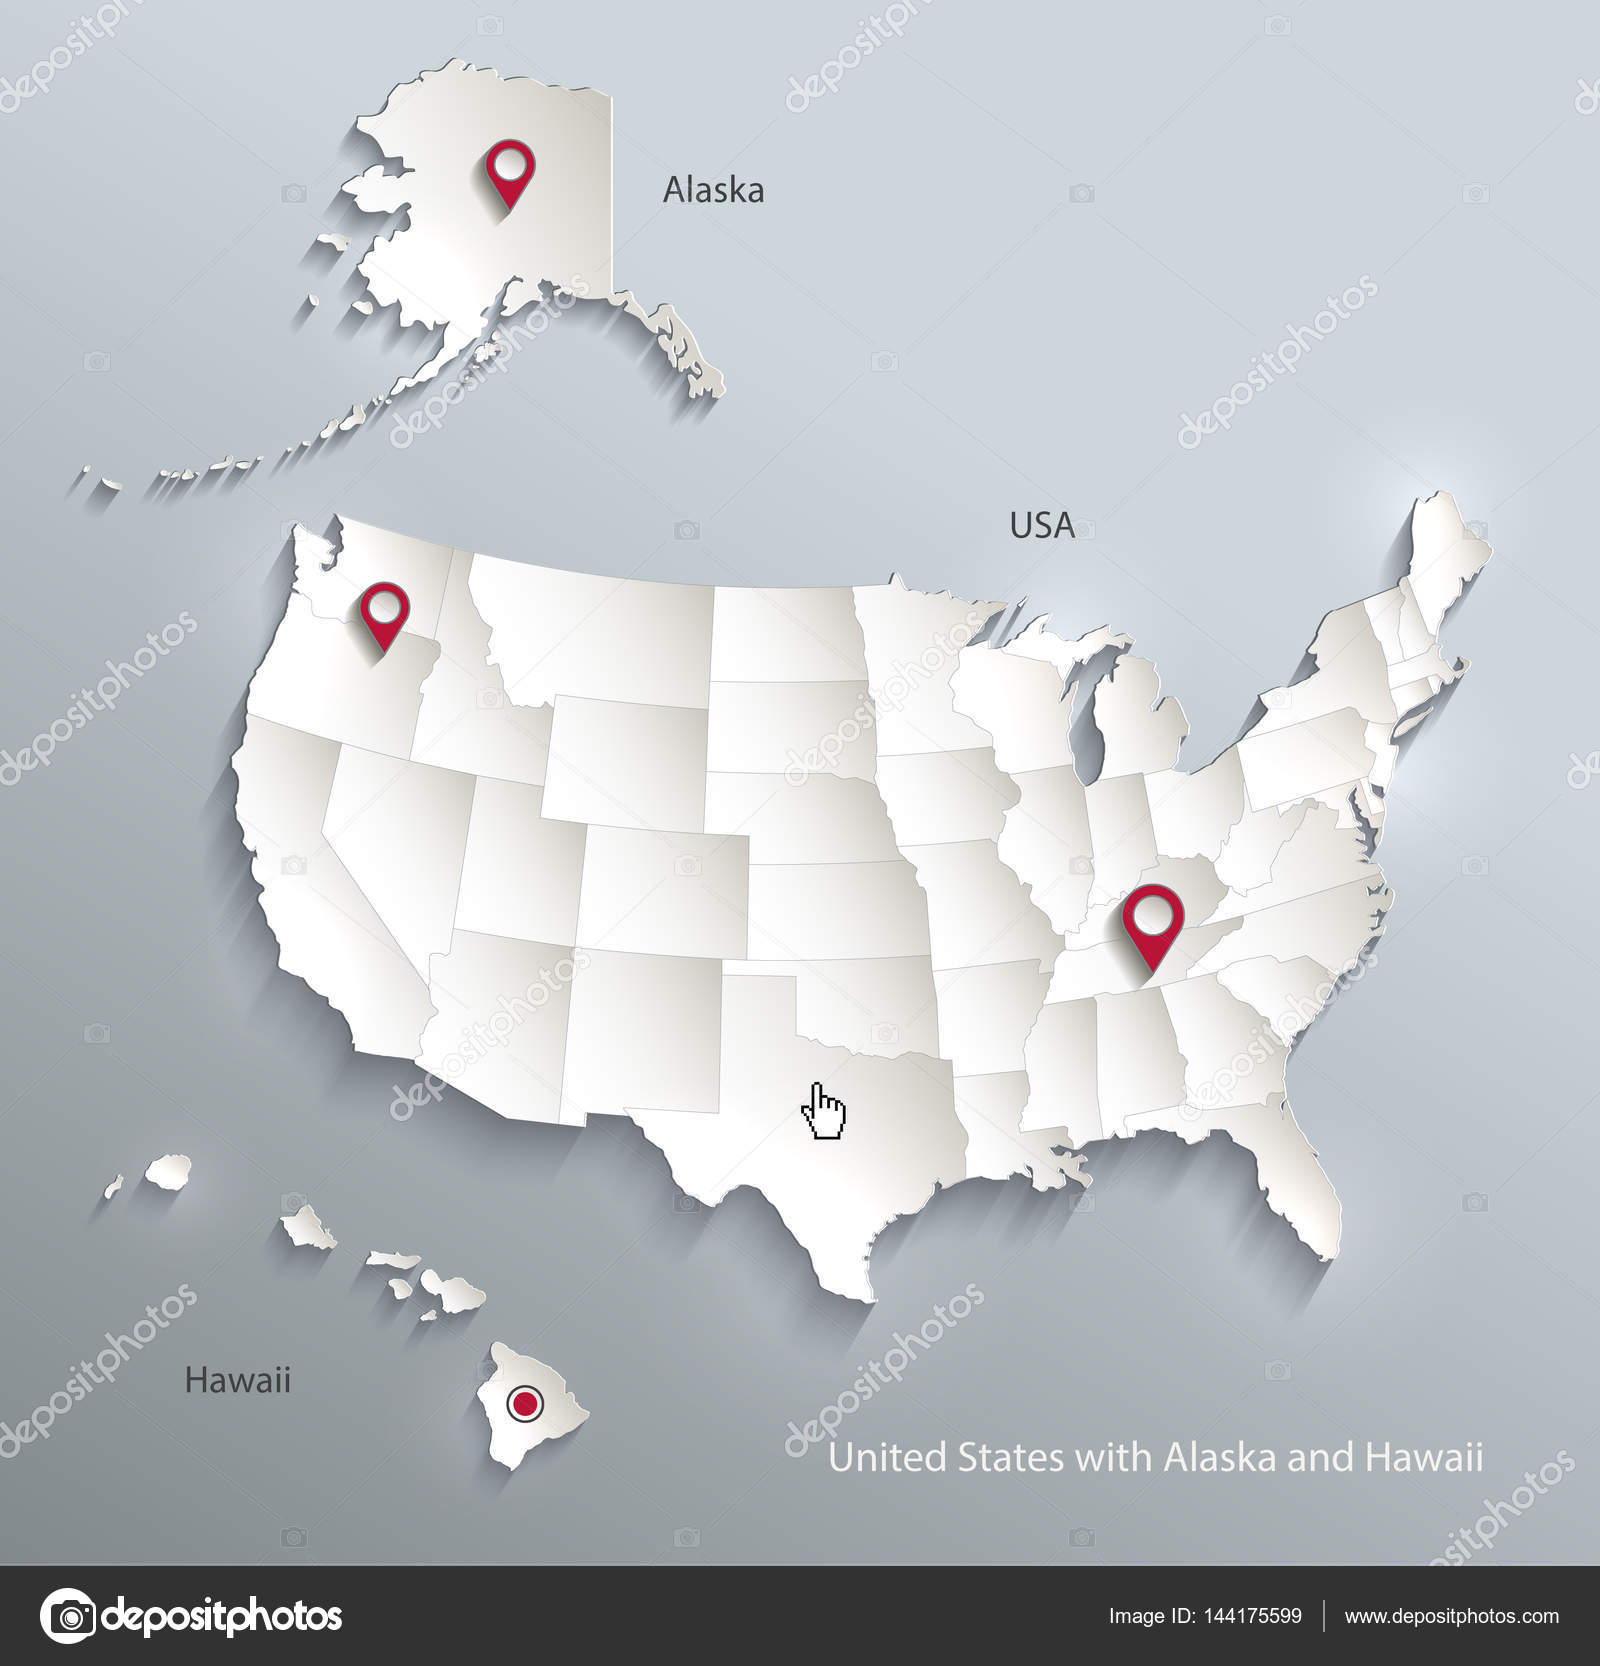 USA with Alaska and Hawaii map separate individual states 3D ...